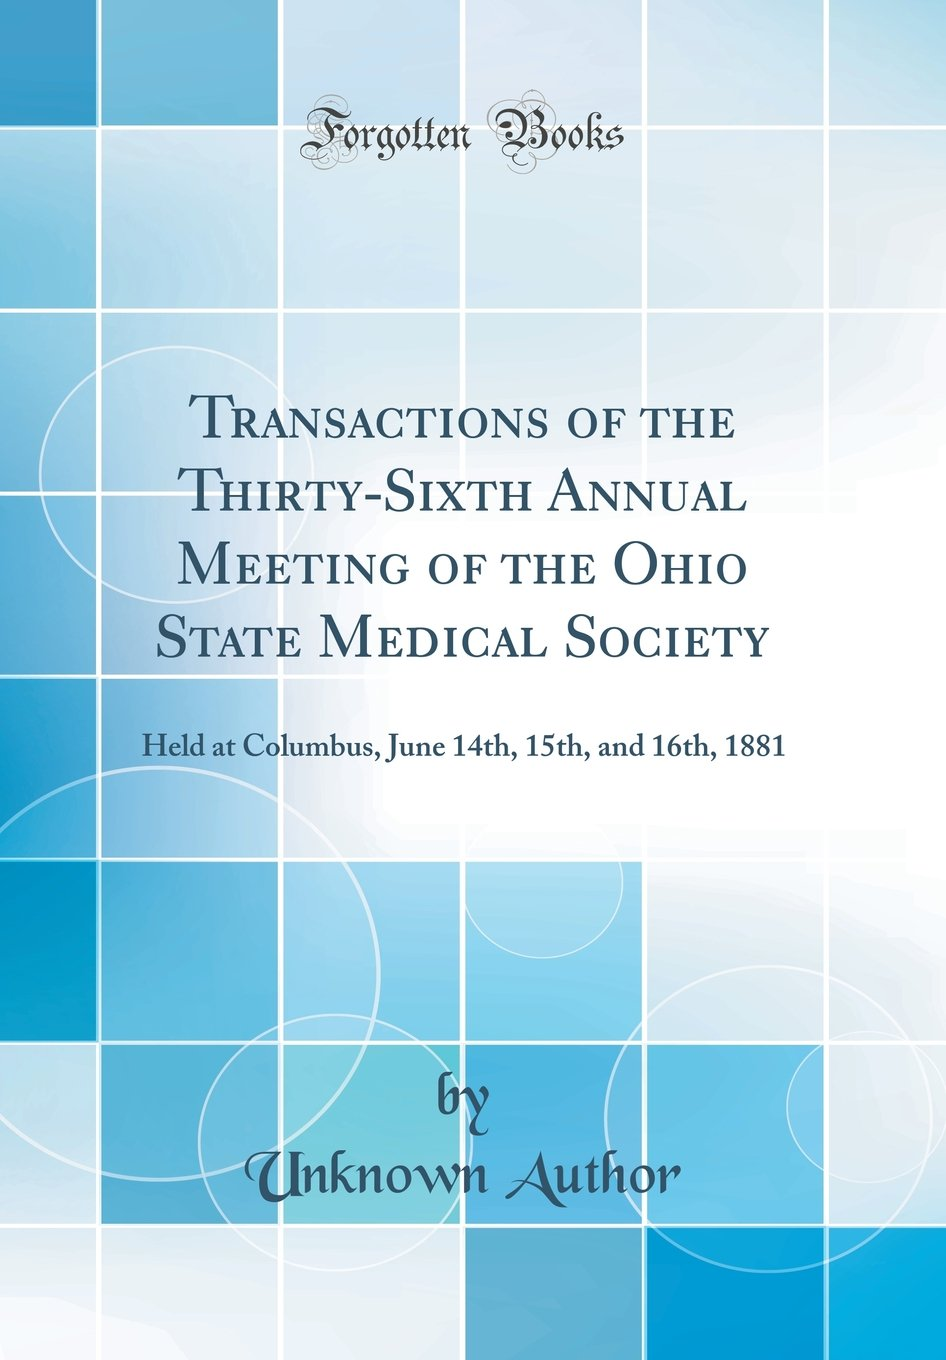 Download Transactions of the Thirty-Sixth Annual Meeting of the Ohio State Medical Society: Held at Columbus, June 14th, 15th, and 16th, 1881 (Classic Reprint) ePub fb2 book